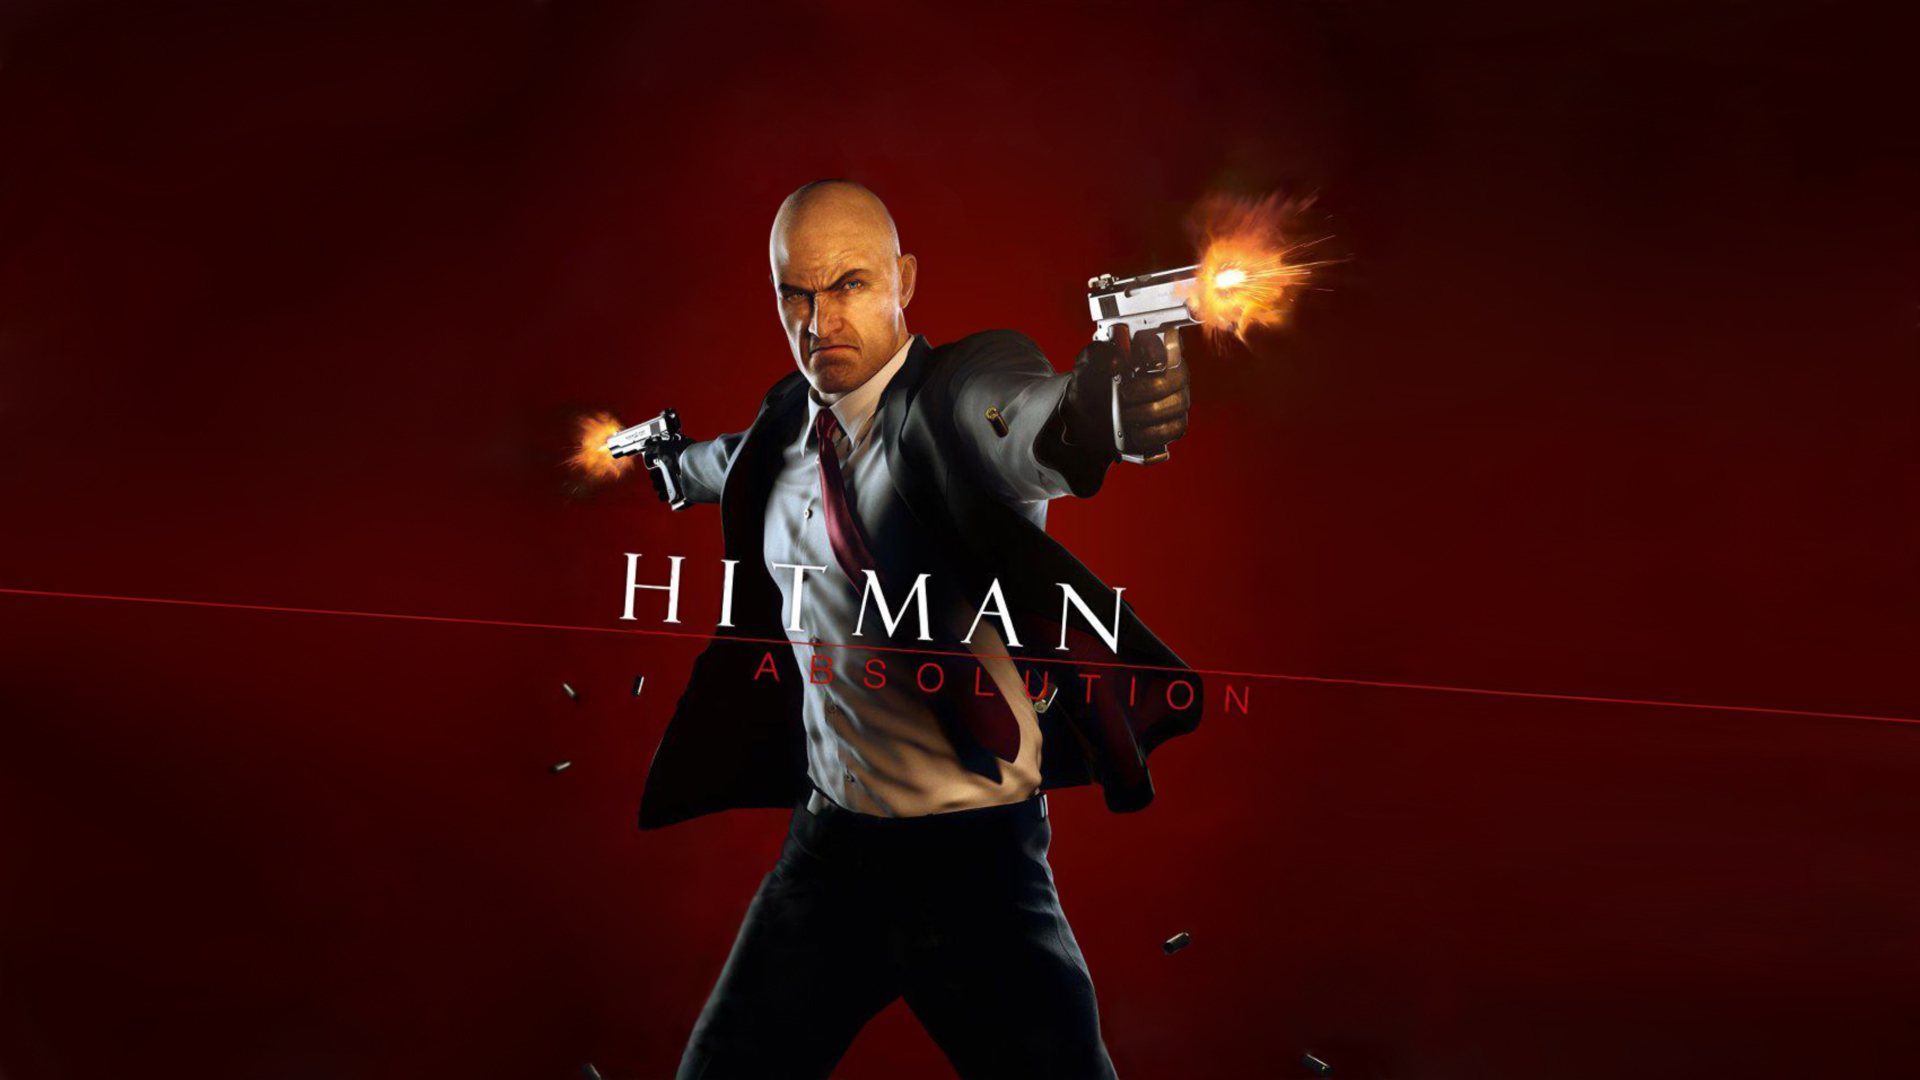 Hitman: Absolution (Steam Key/Region Free/MULTILANG)